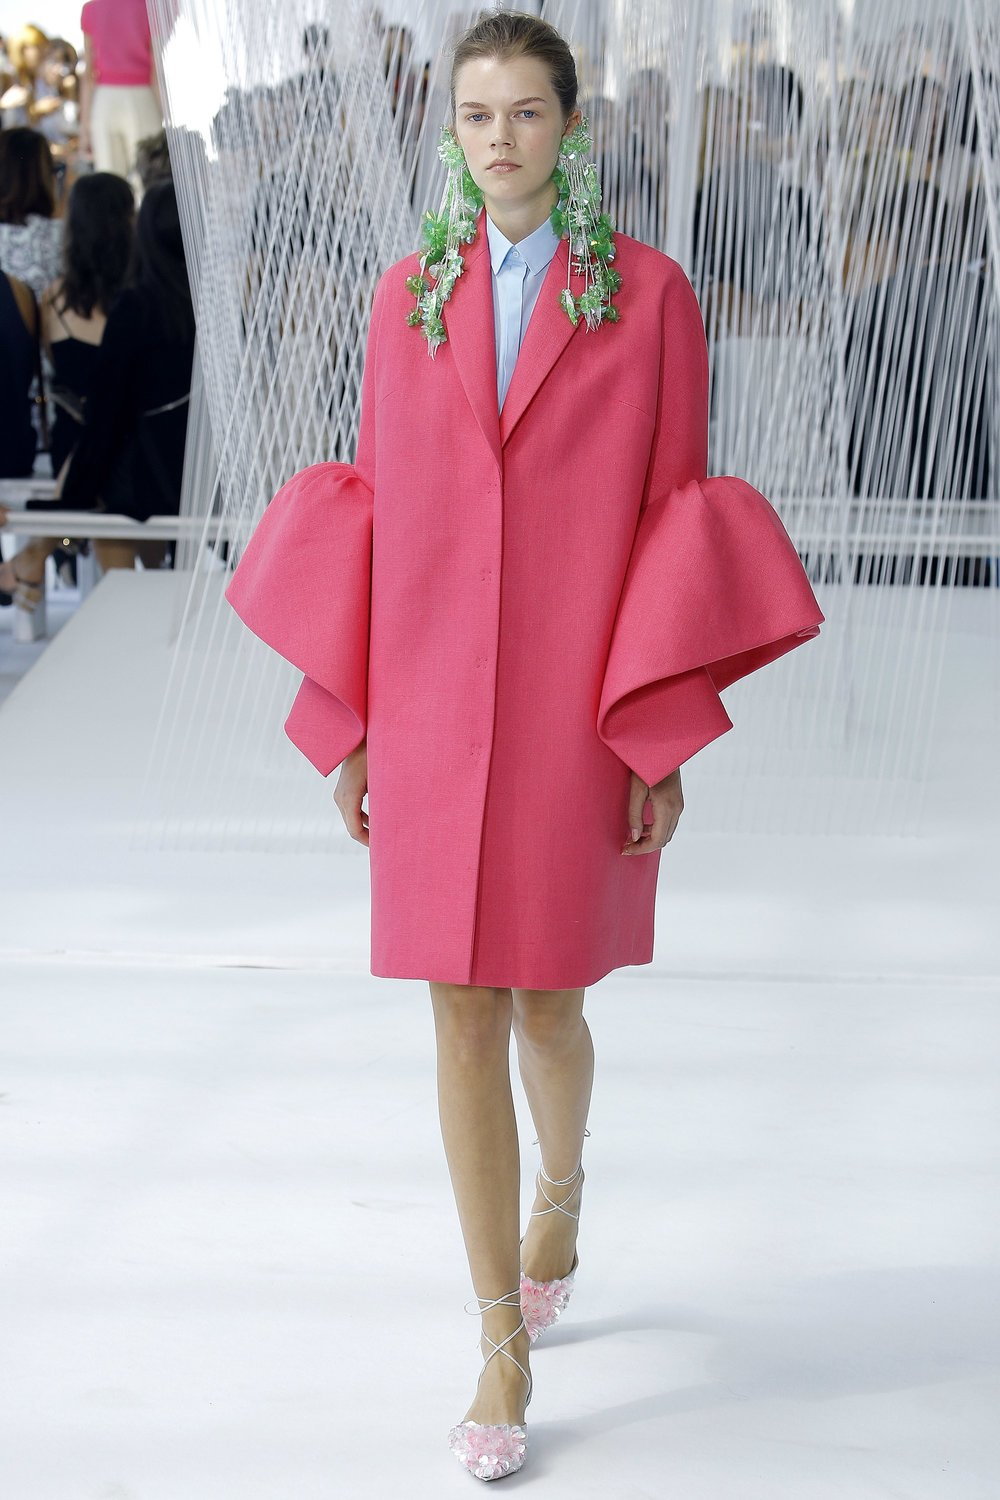 Delpozo /photo via Vogue